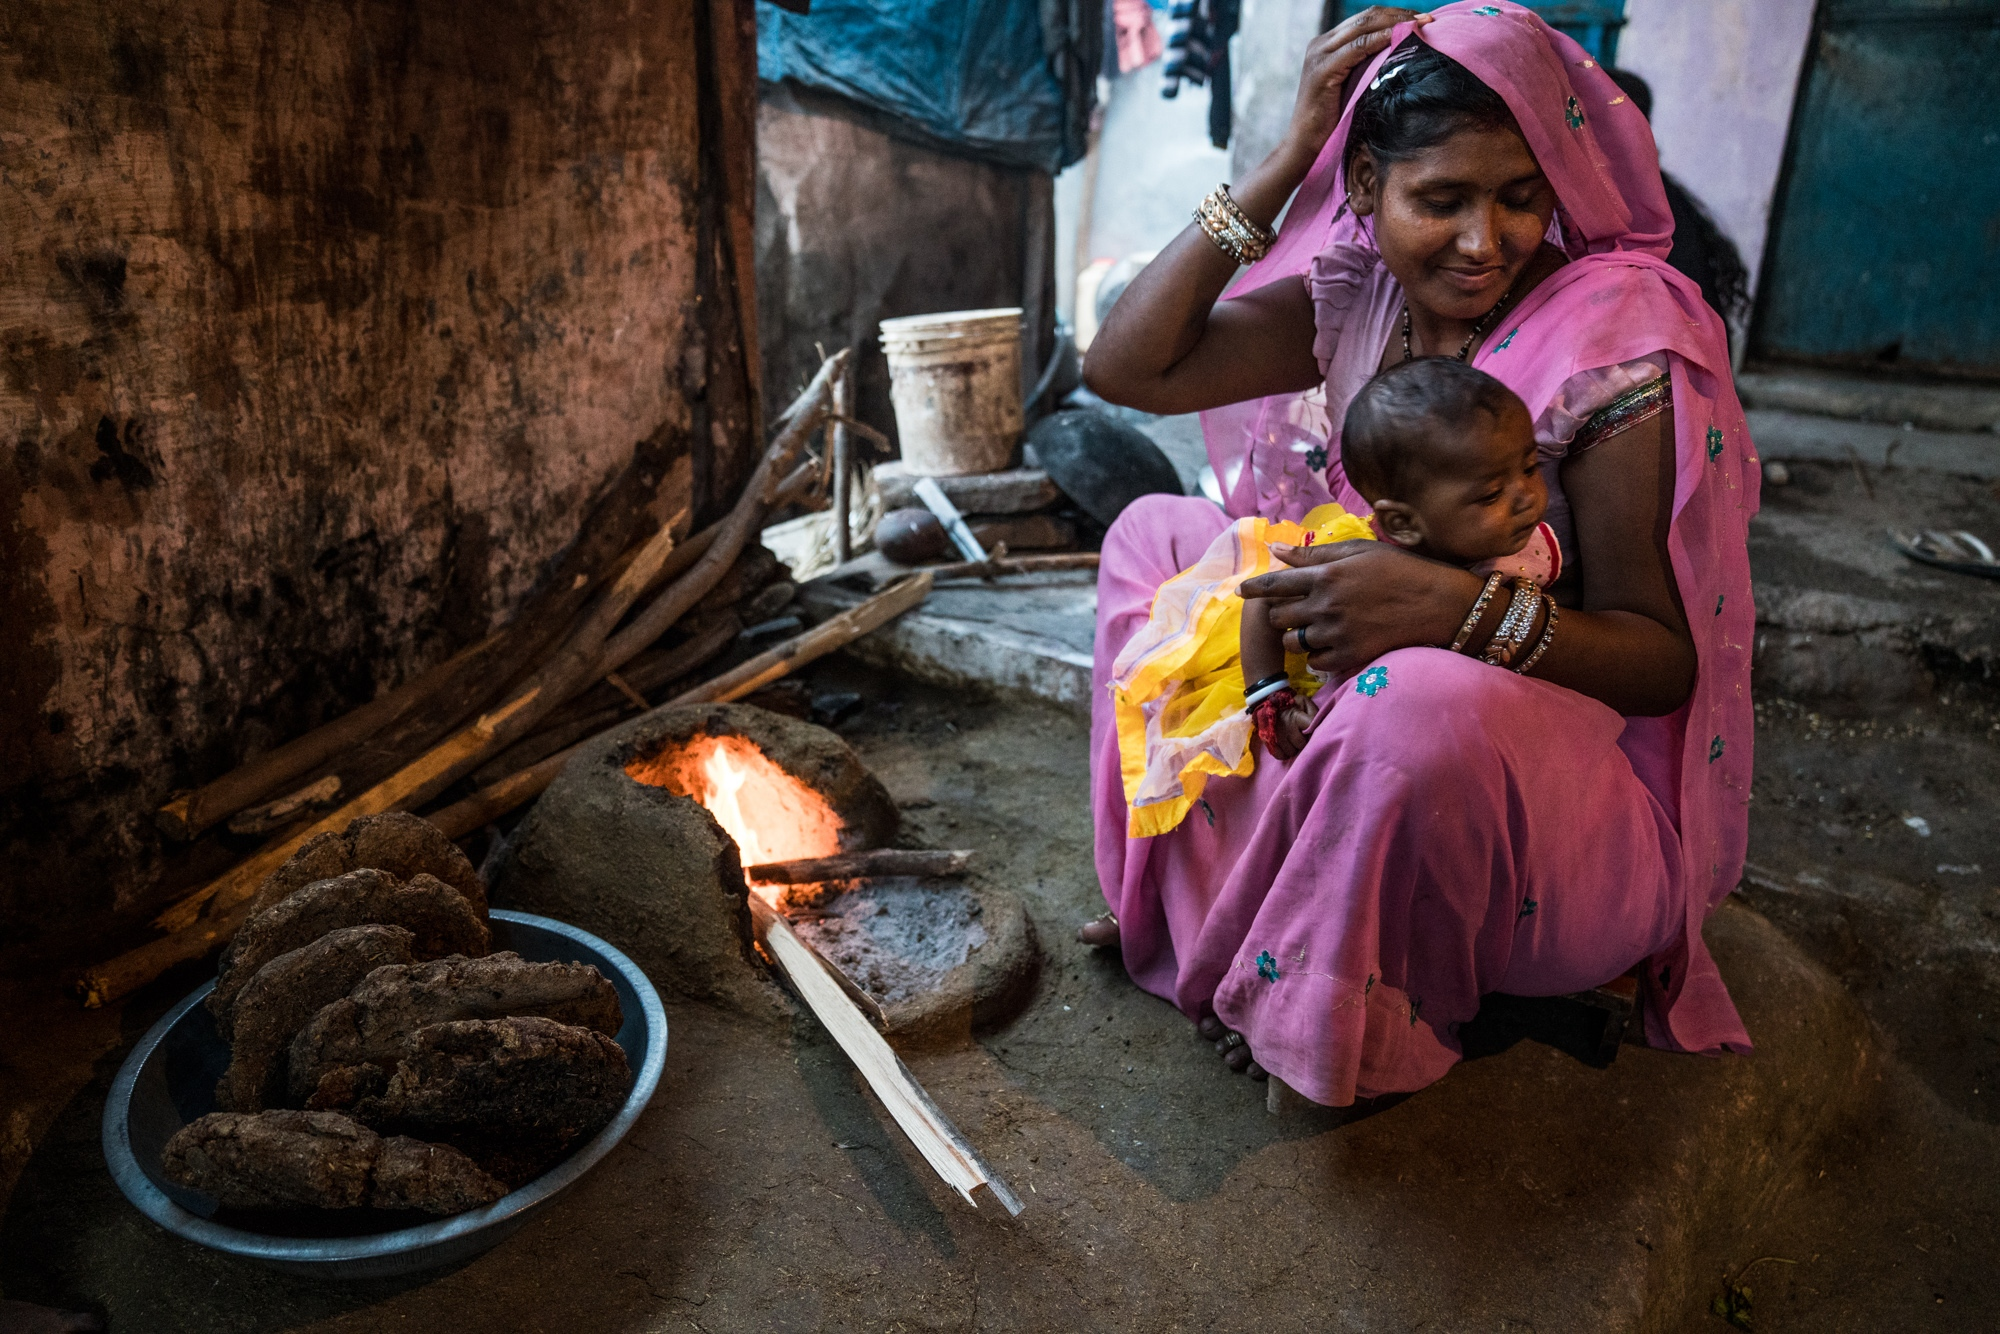 A woman with her baby prepares a fire before cooking dinner using a mixture of dung and wood as fuel. India.